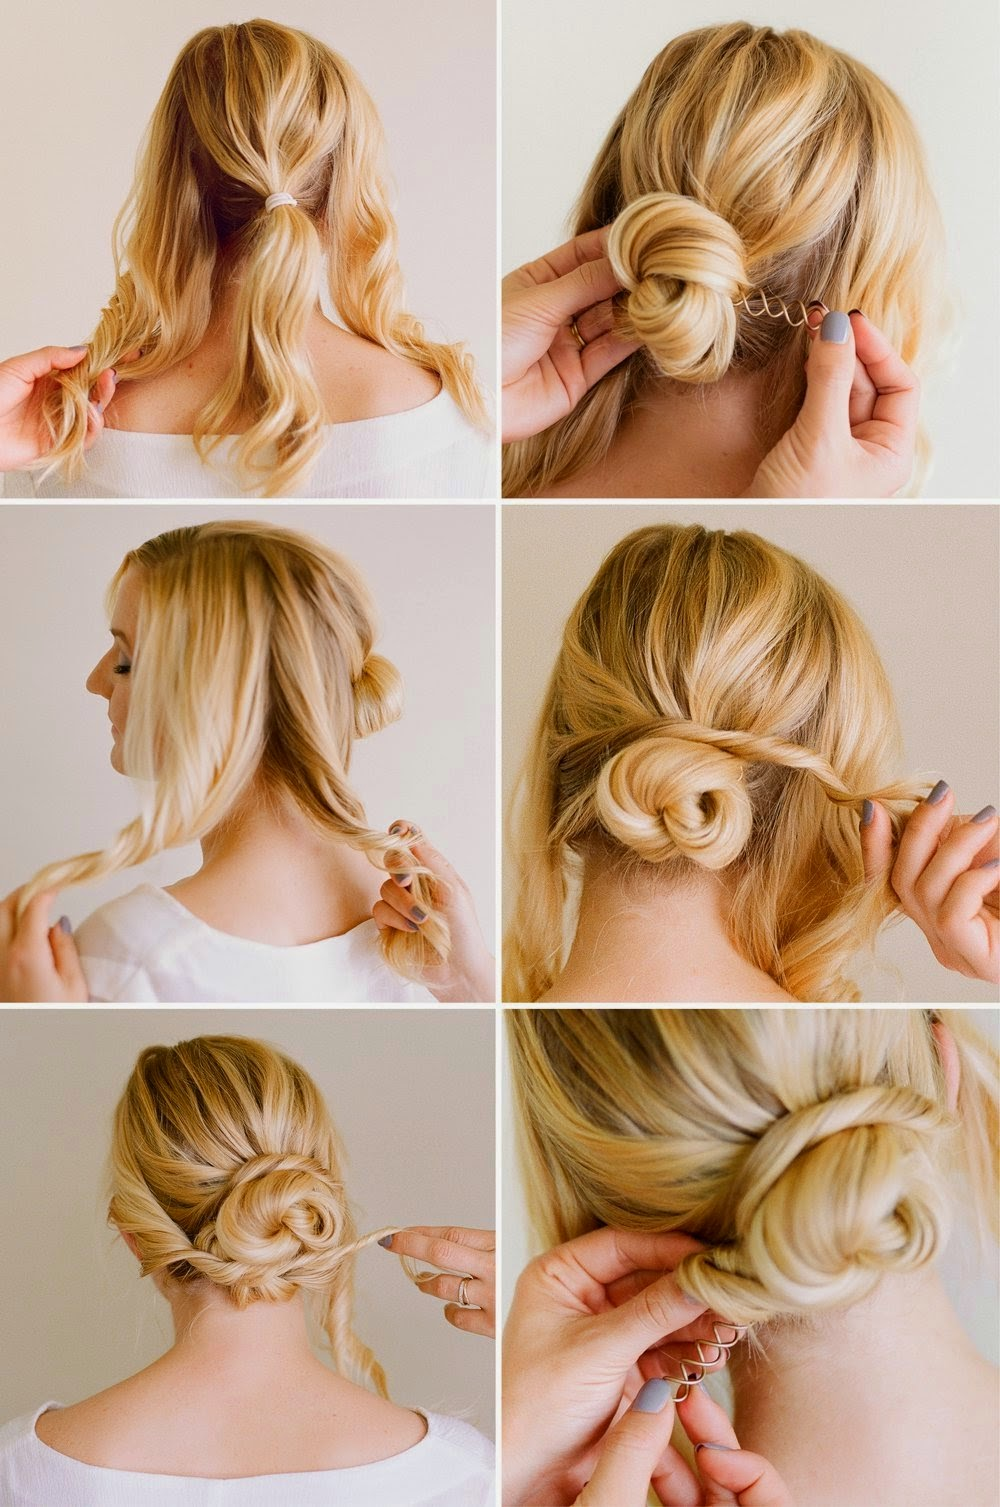 5 Best Braid Hair Tutorials}